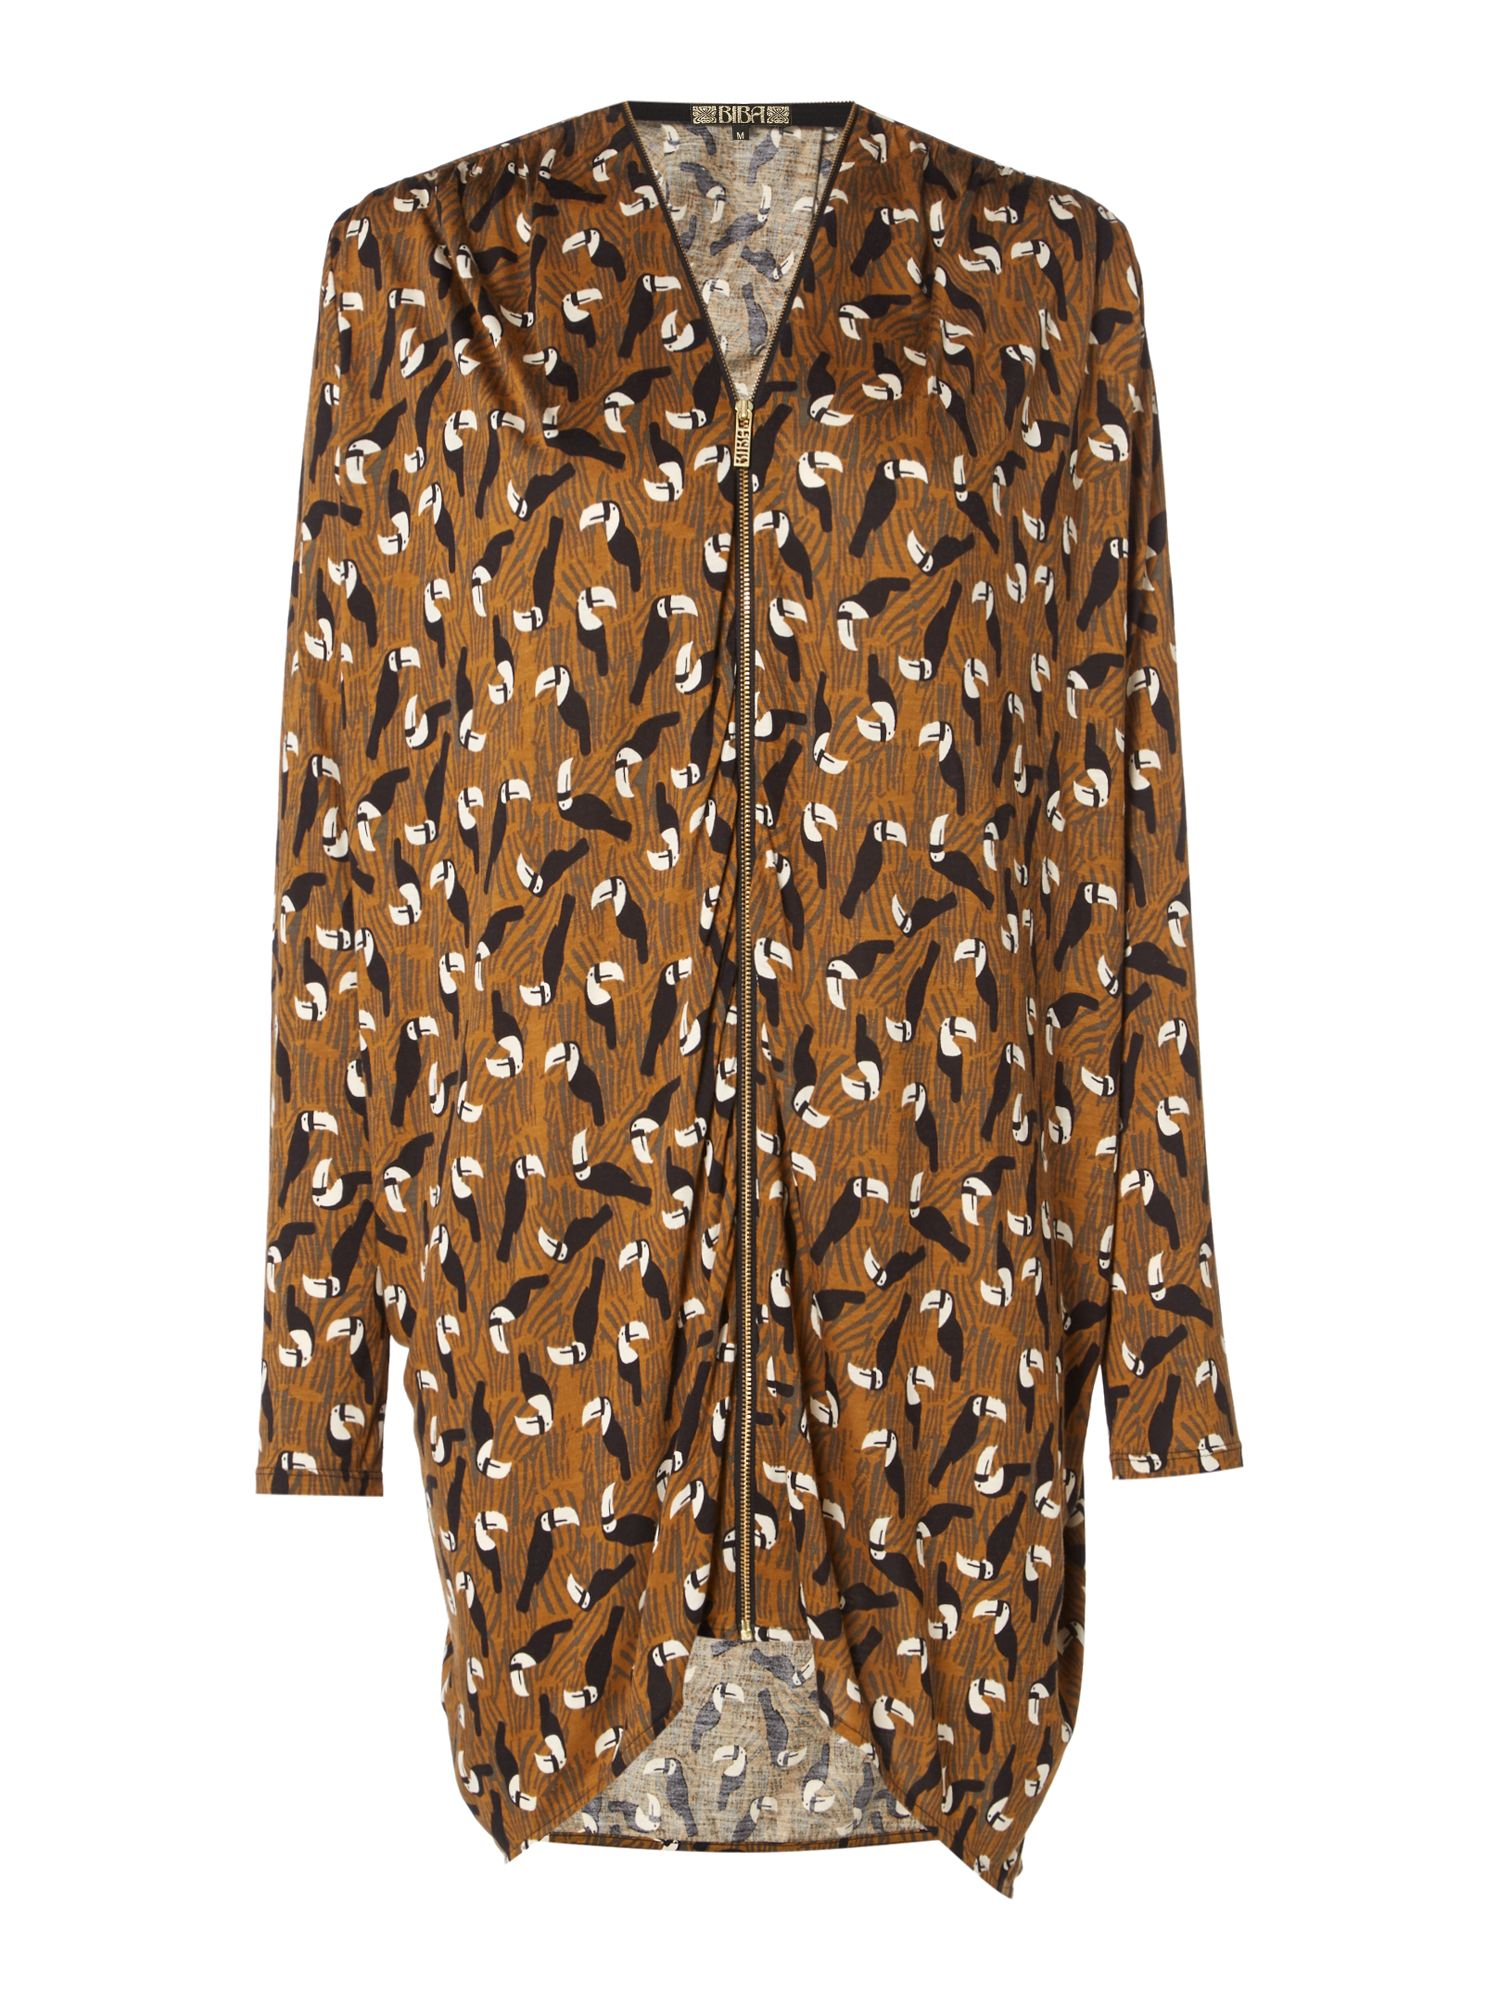 Biba Biba Toucan printed zip up tunic, Multi-Coloured